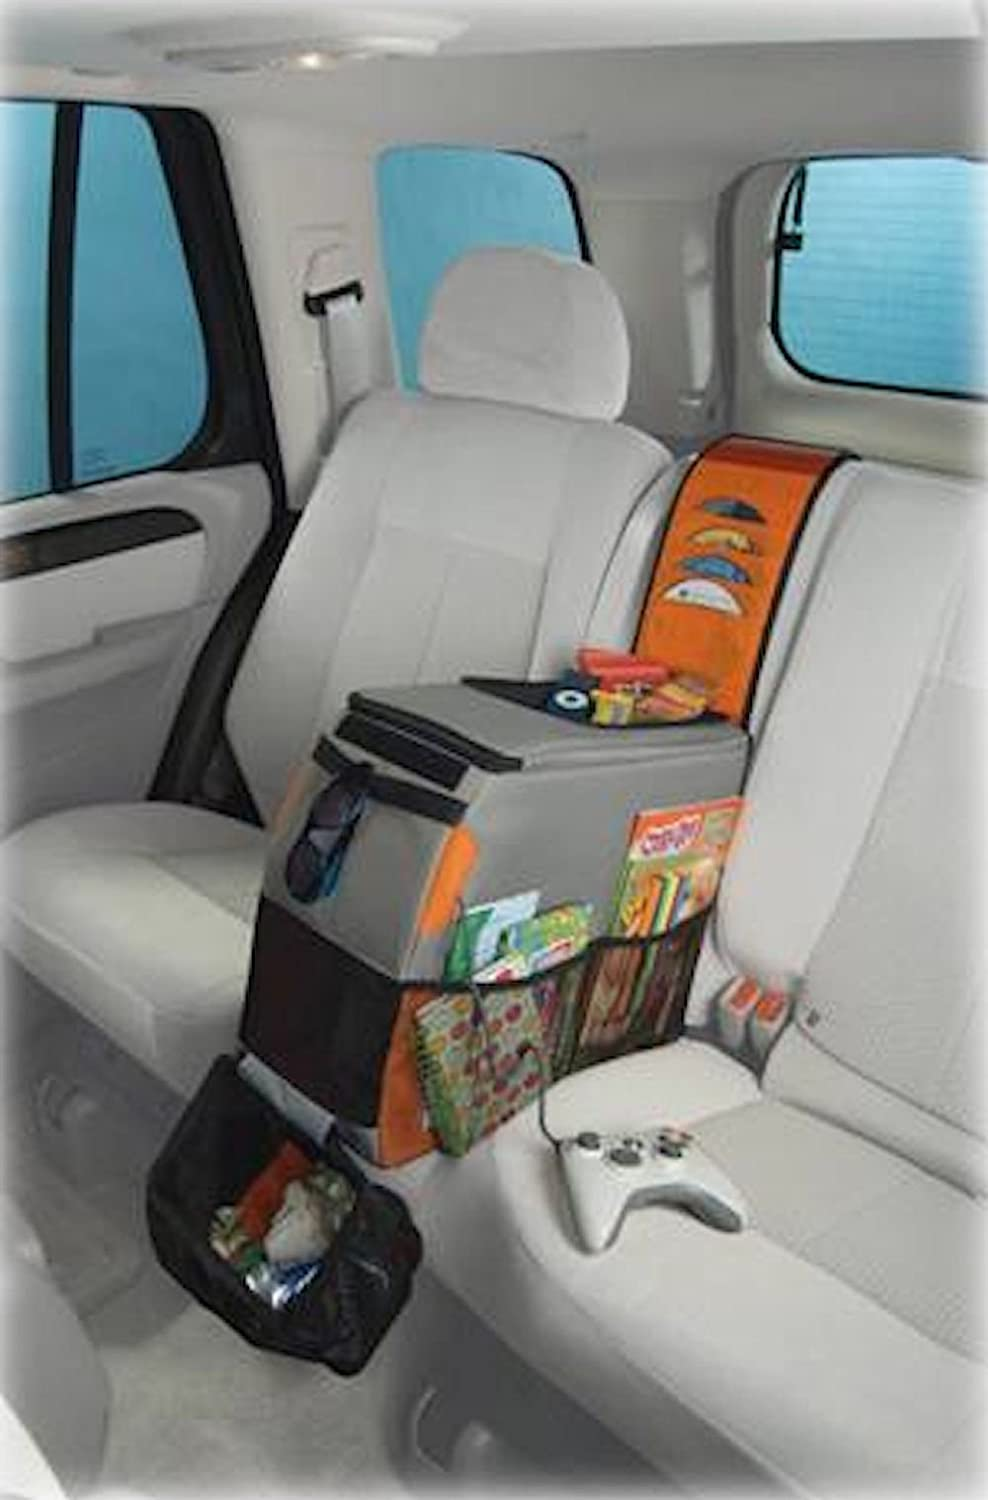 amazoncom highland 1950200 back seat activity center with detachable dvd storage and trash bag automotive